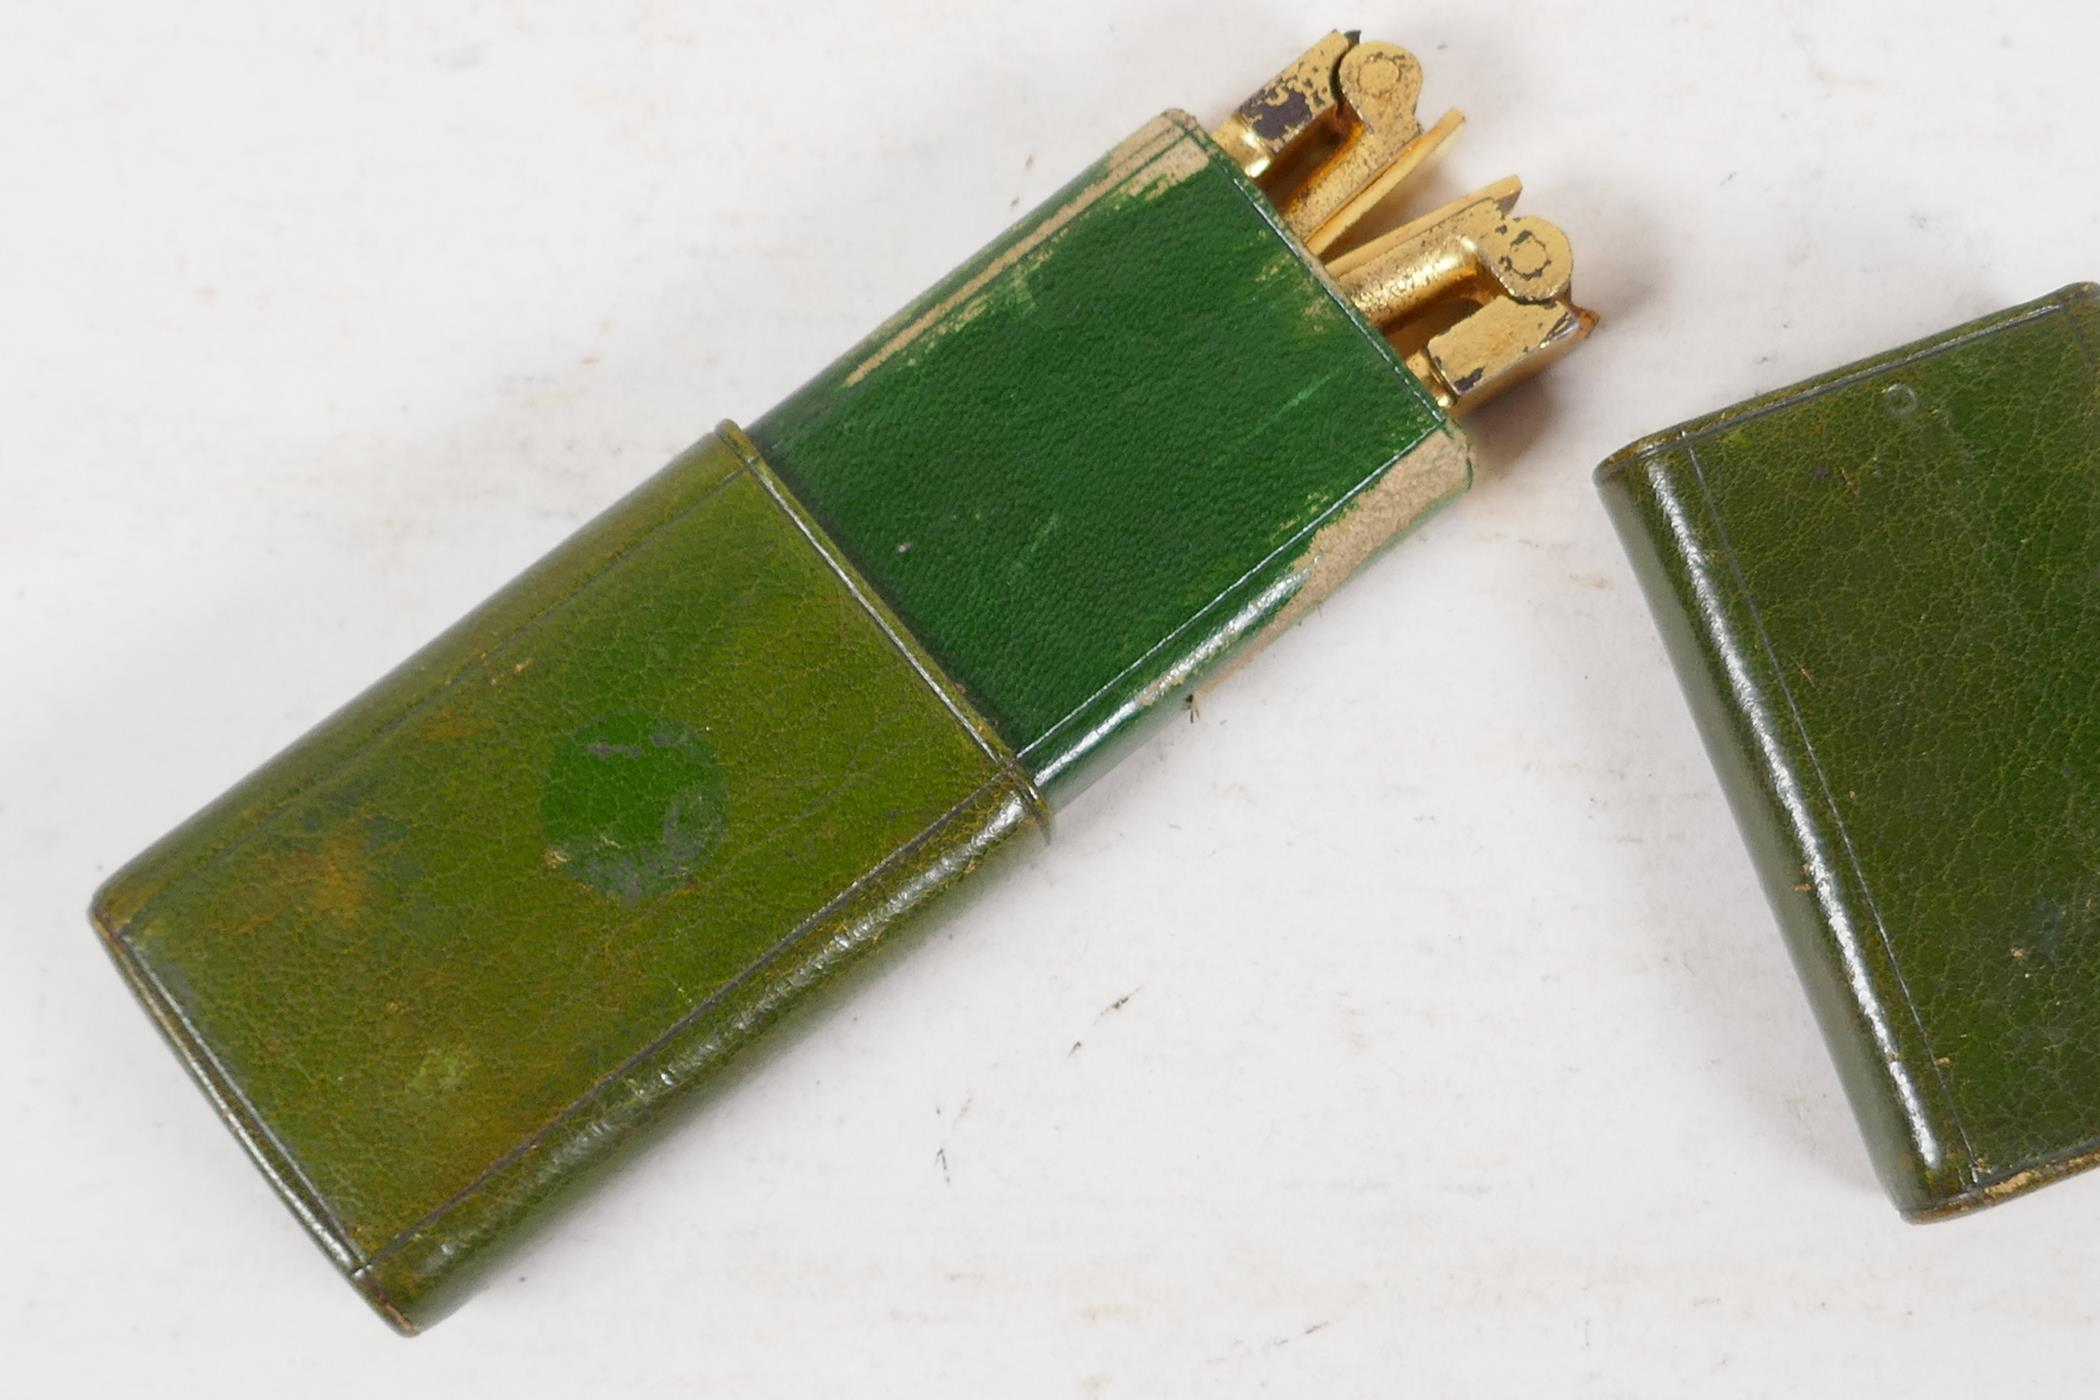 A pair of gilt metal folding curling tongs with hallmarked silver handles, London 1905, in a - Image 4 of 6